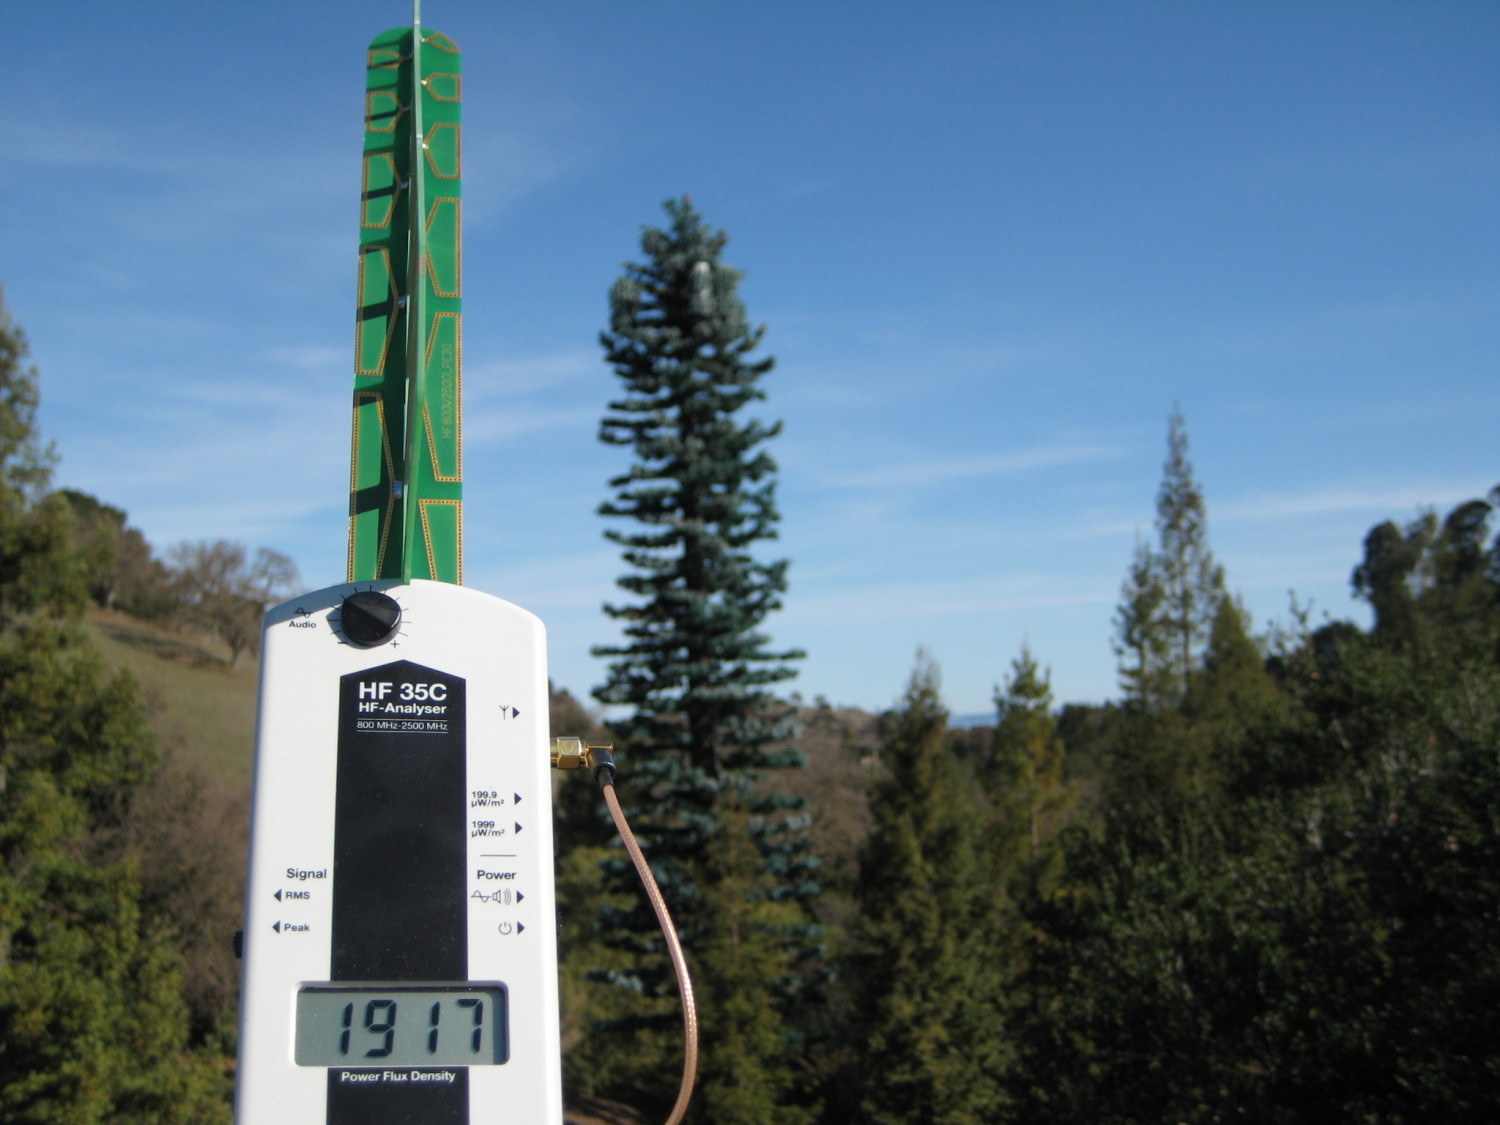 EMF Meters | Protect Your Family from EMF Pollution